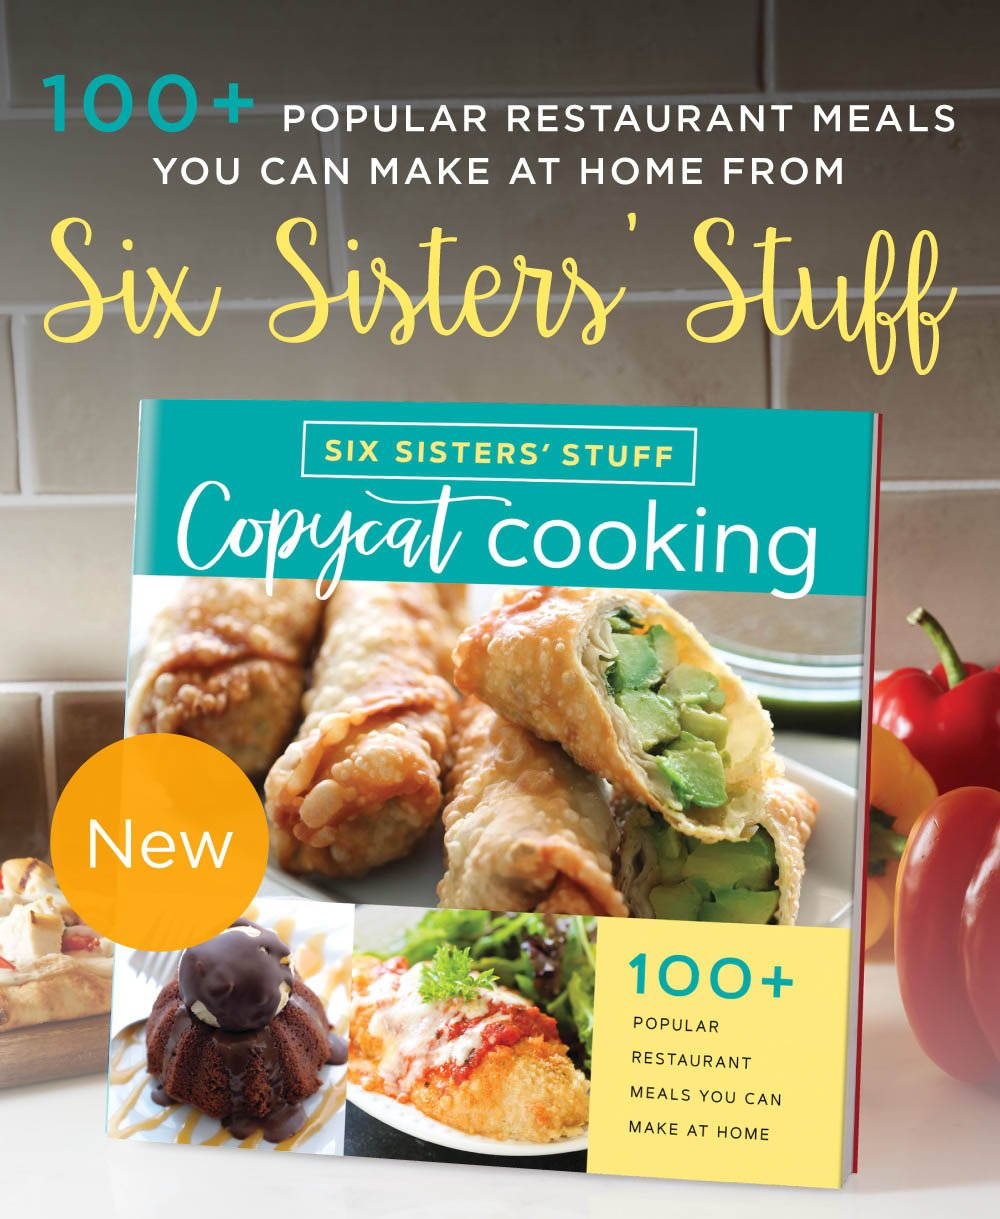 Six Sisters' Stuff Copycat Cooking cook book